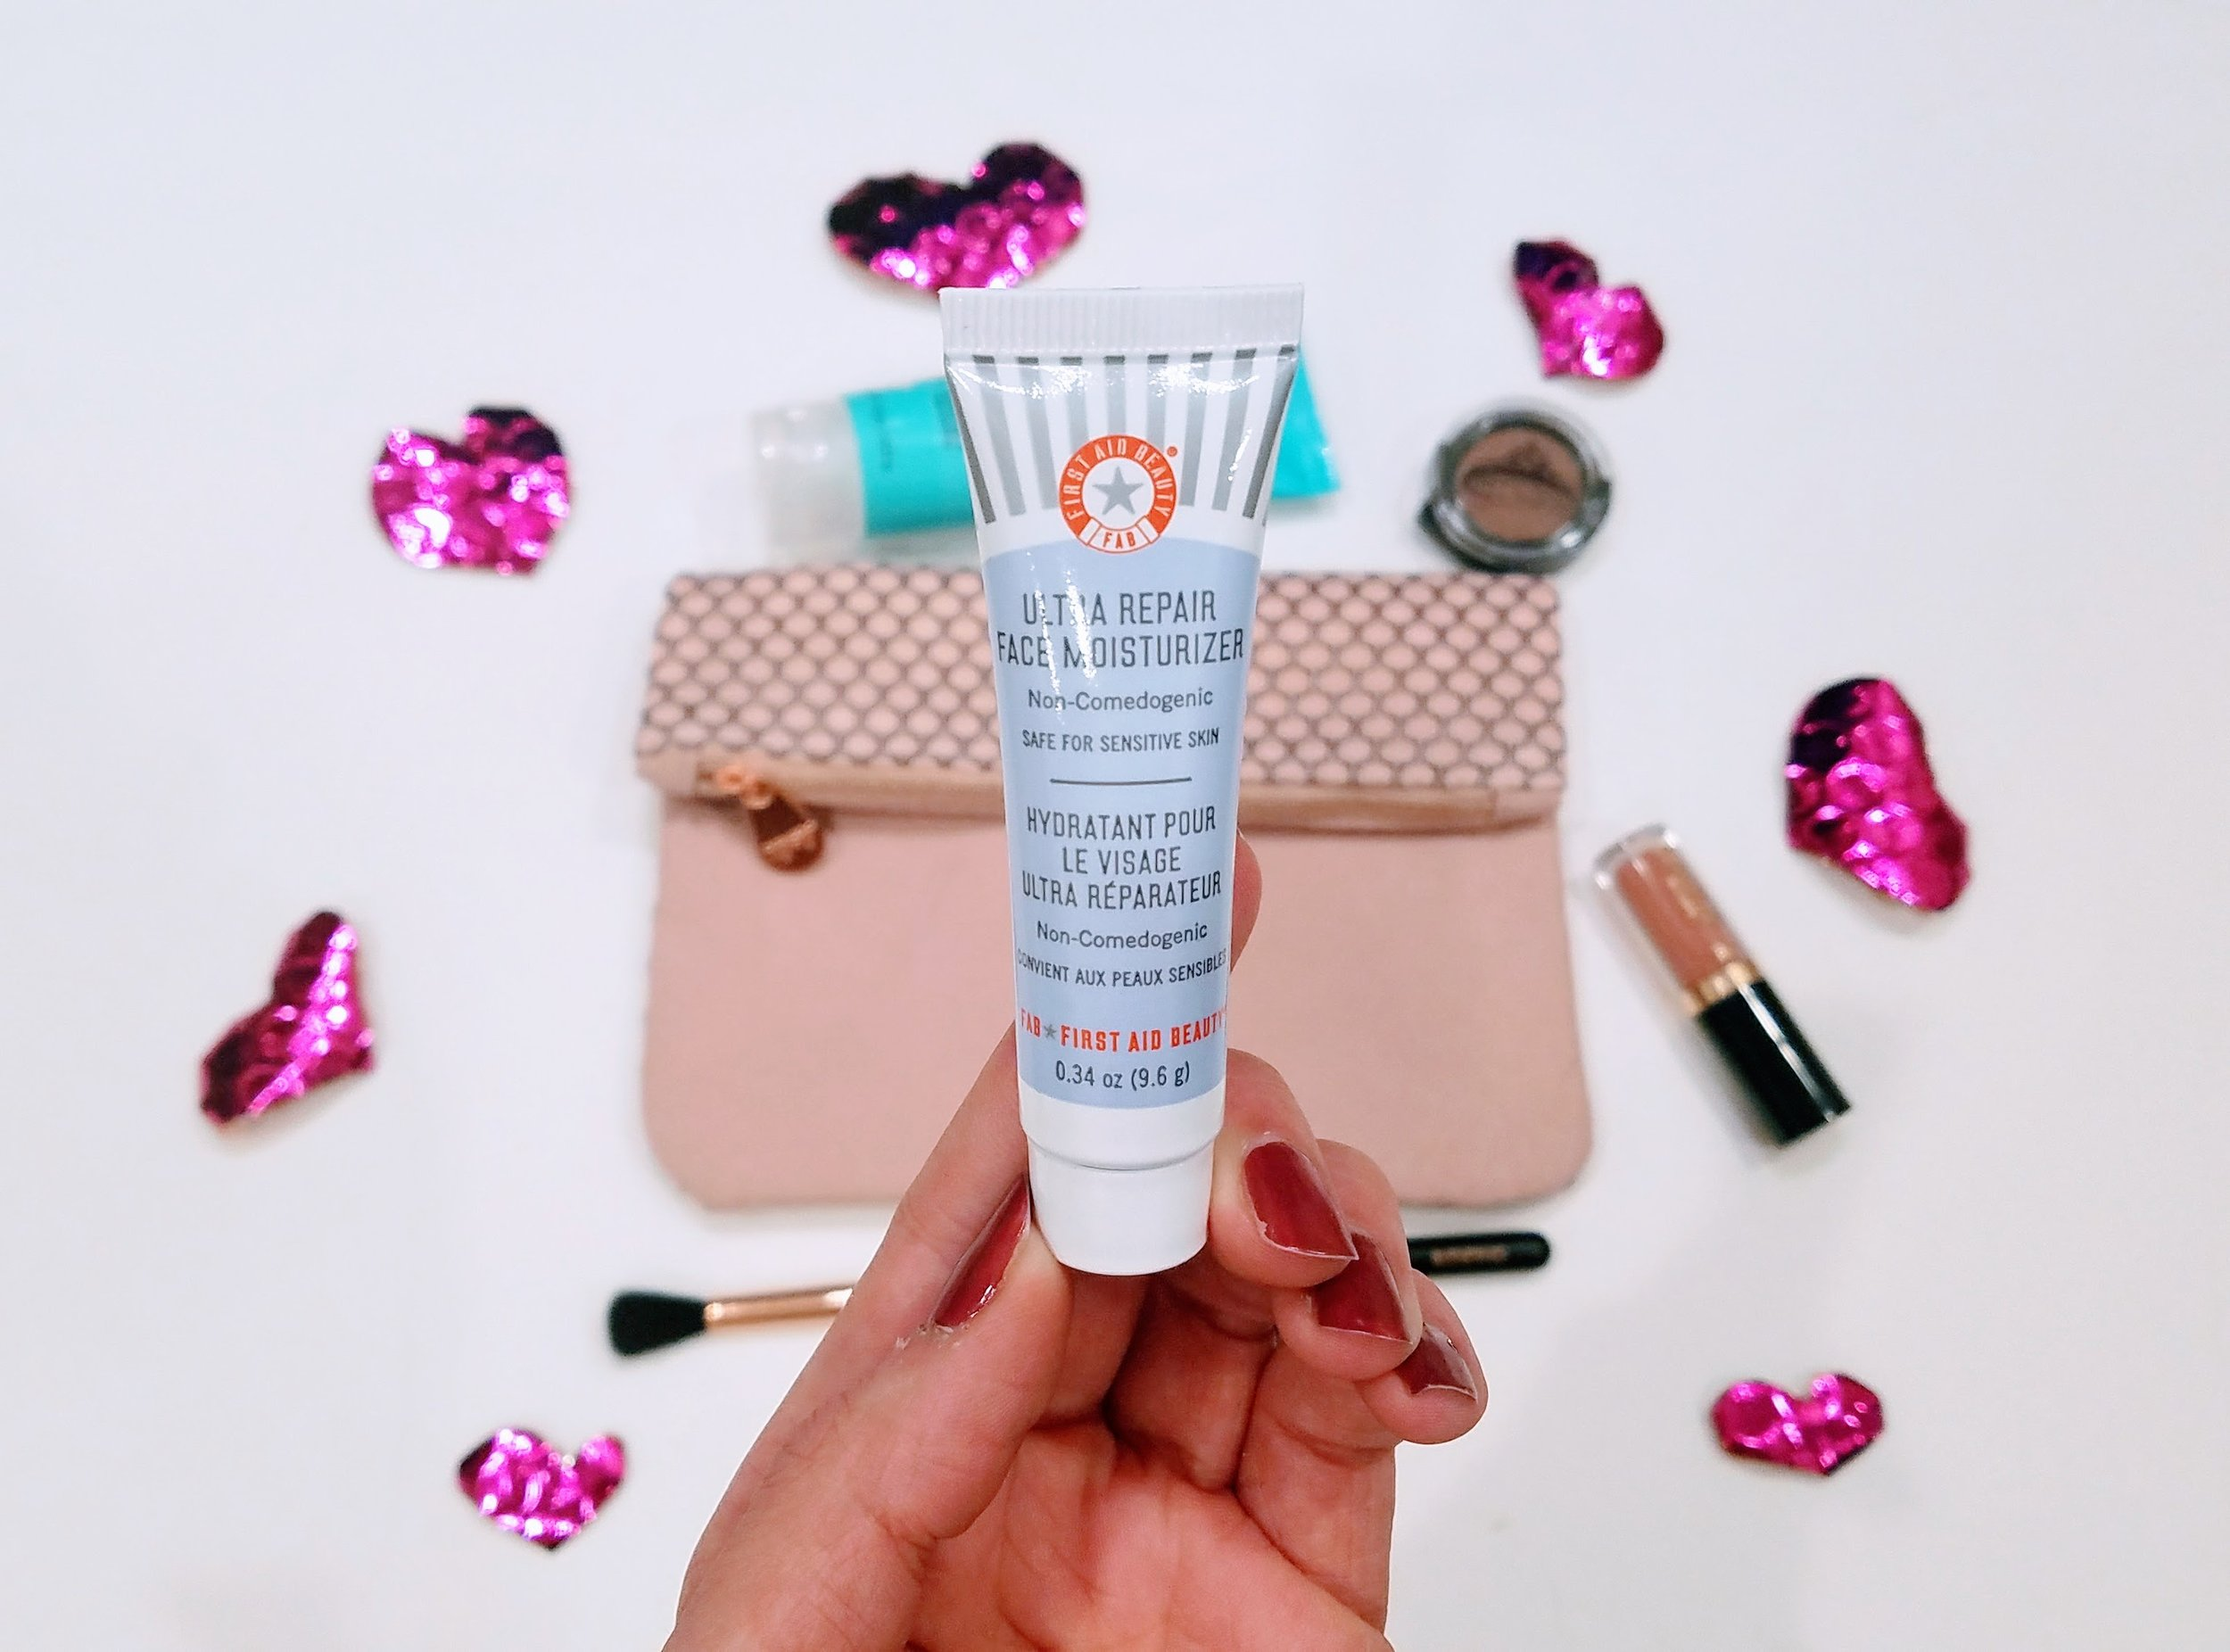 First Aide Beauty Face Moisturizer. Ipsy bag